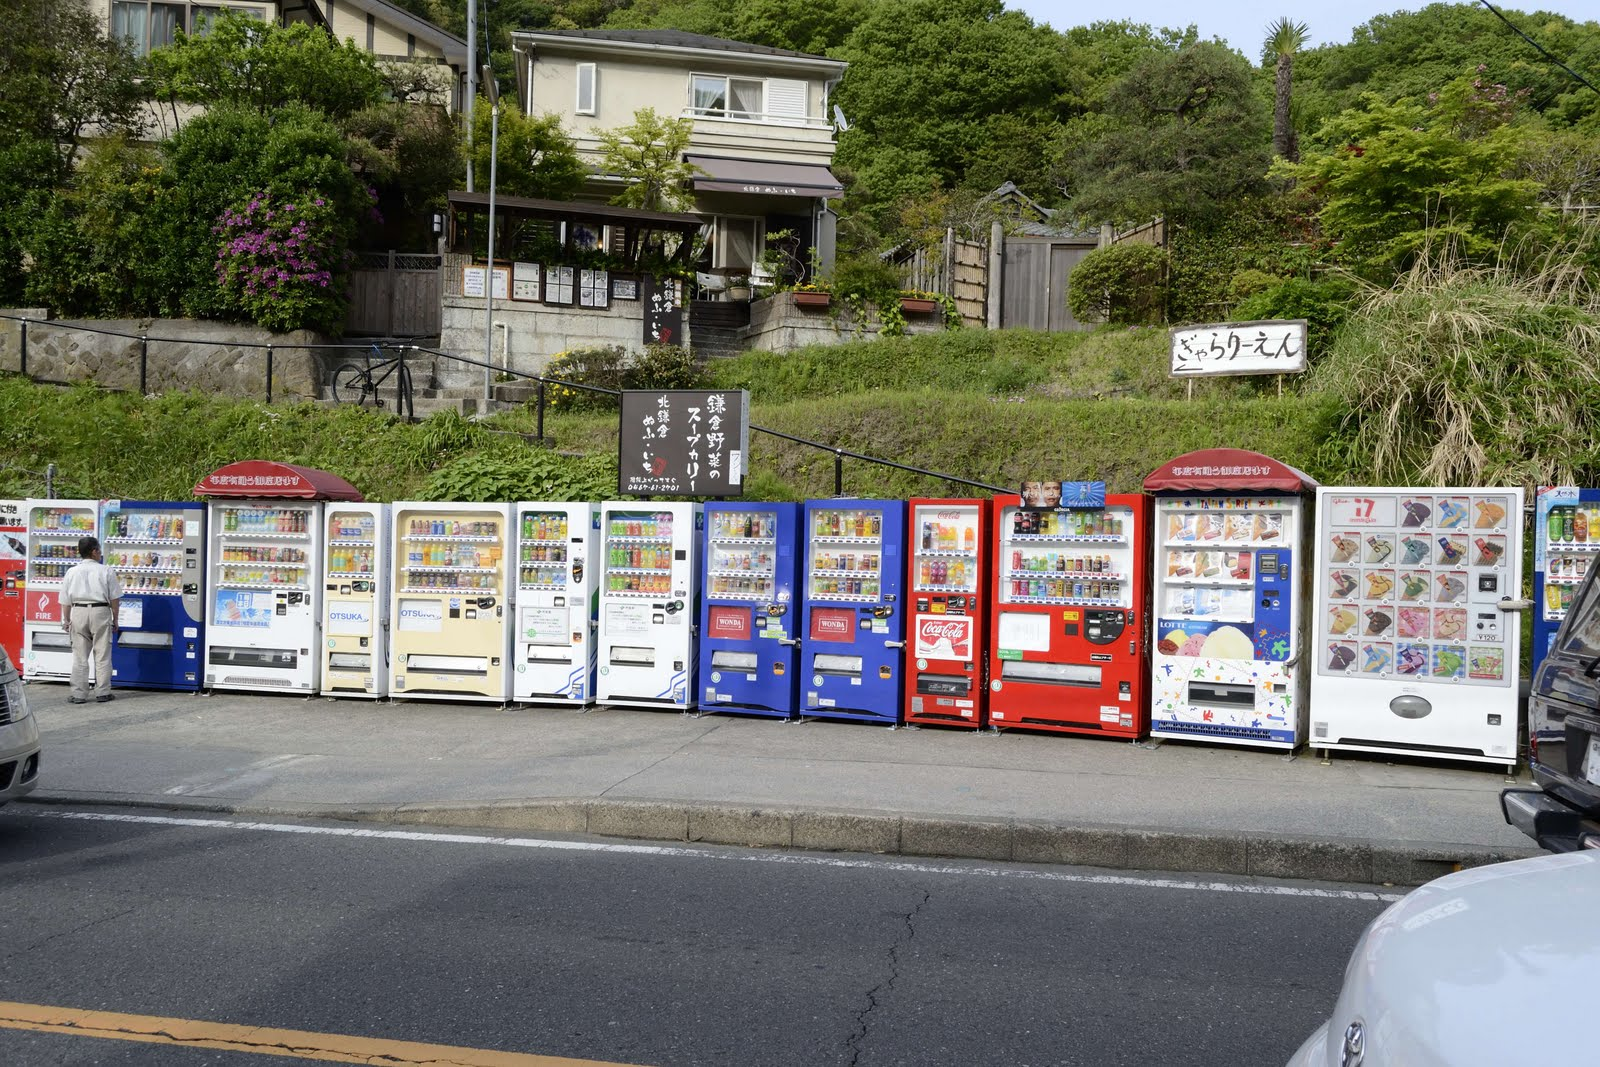 Japanese vending machines row